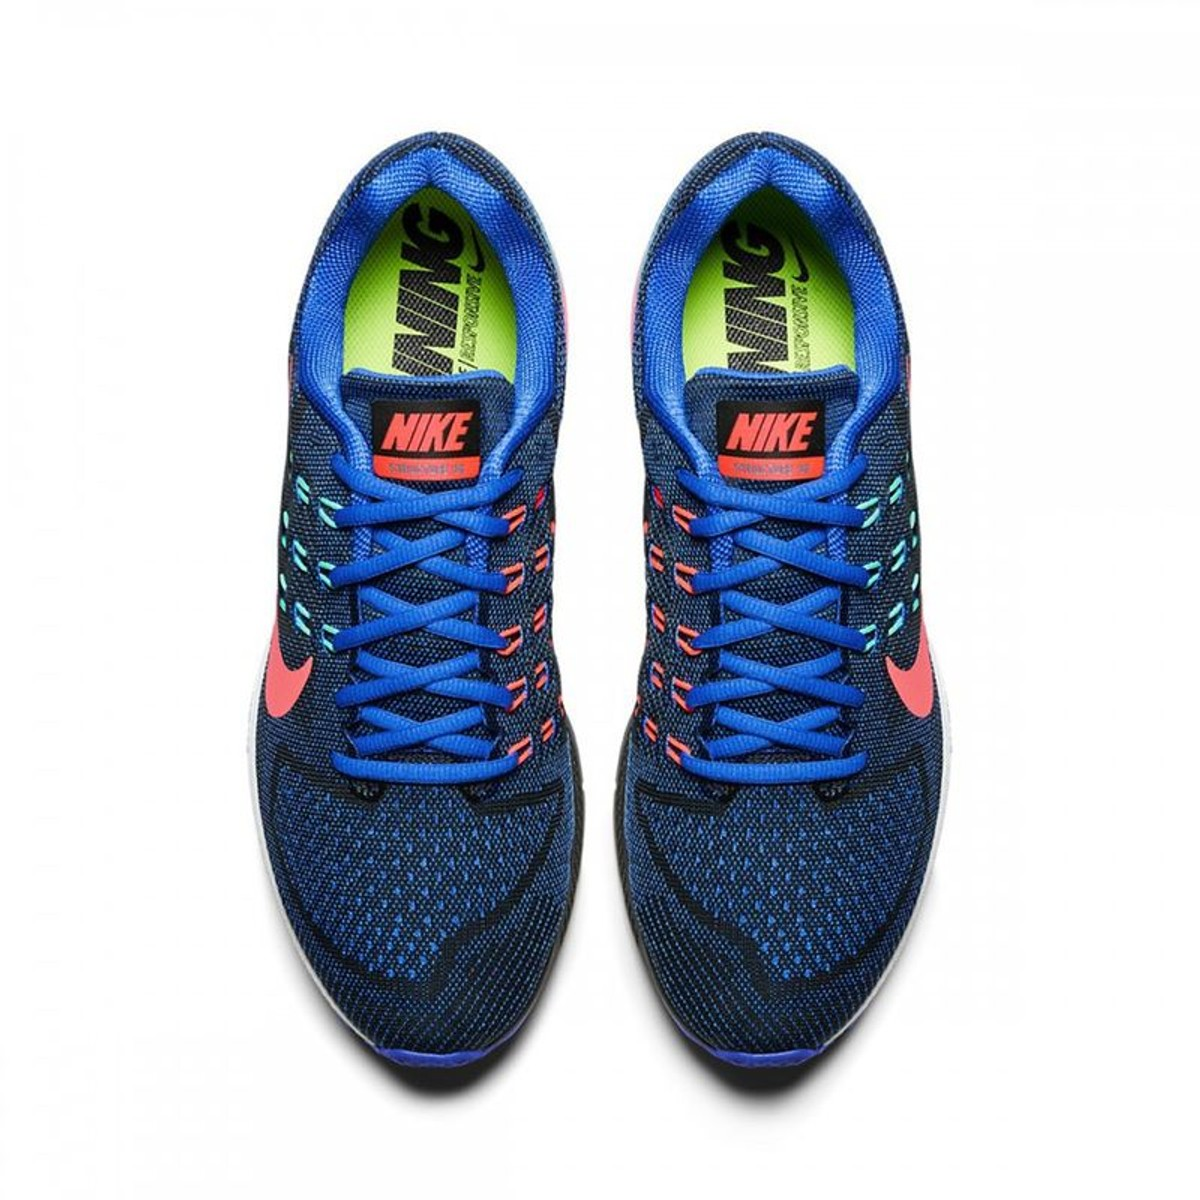 innovative design 43320 7fe09 Basket Nike Air Zoom Structure 18 - 683731-400 - Taille   47